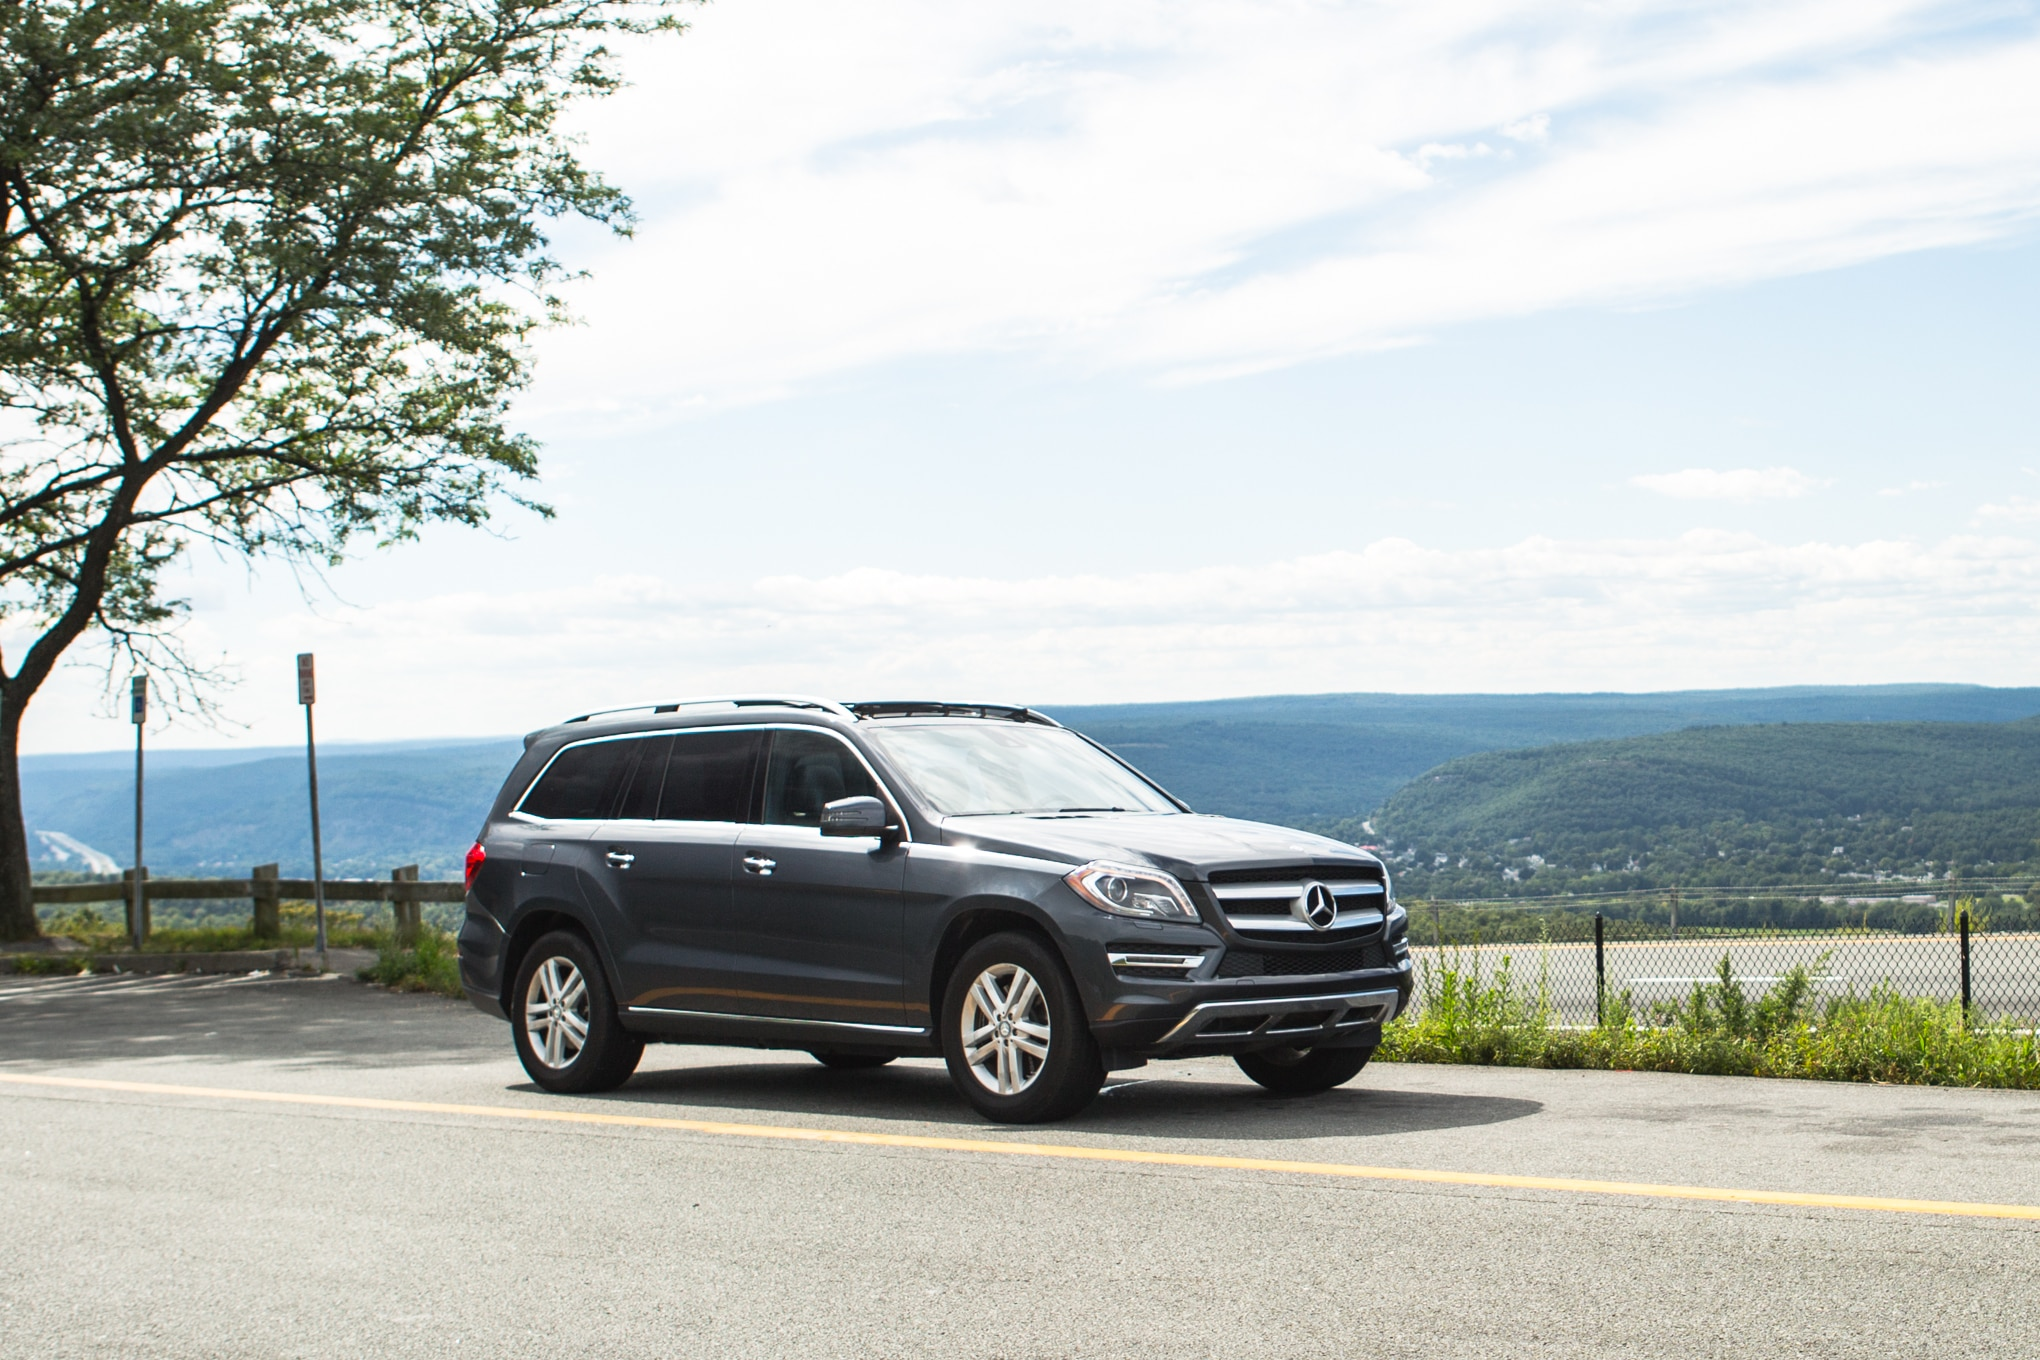 2013 Mercedes-Benz GL450 - Four Seasons Update - August 2013